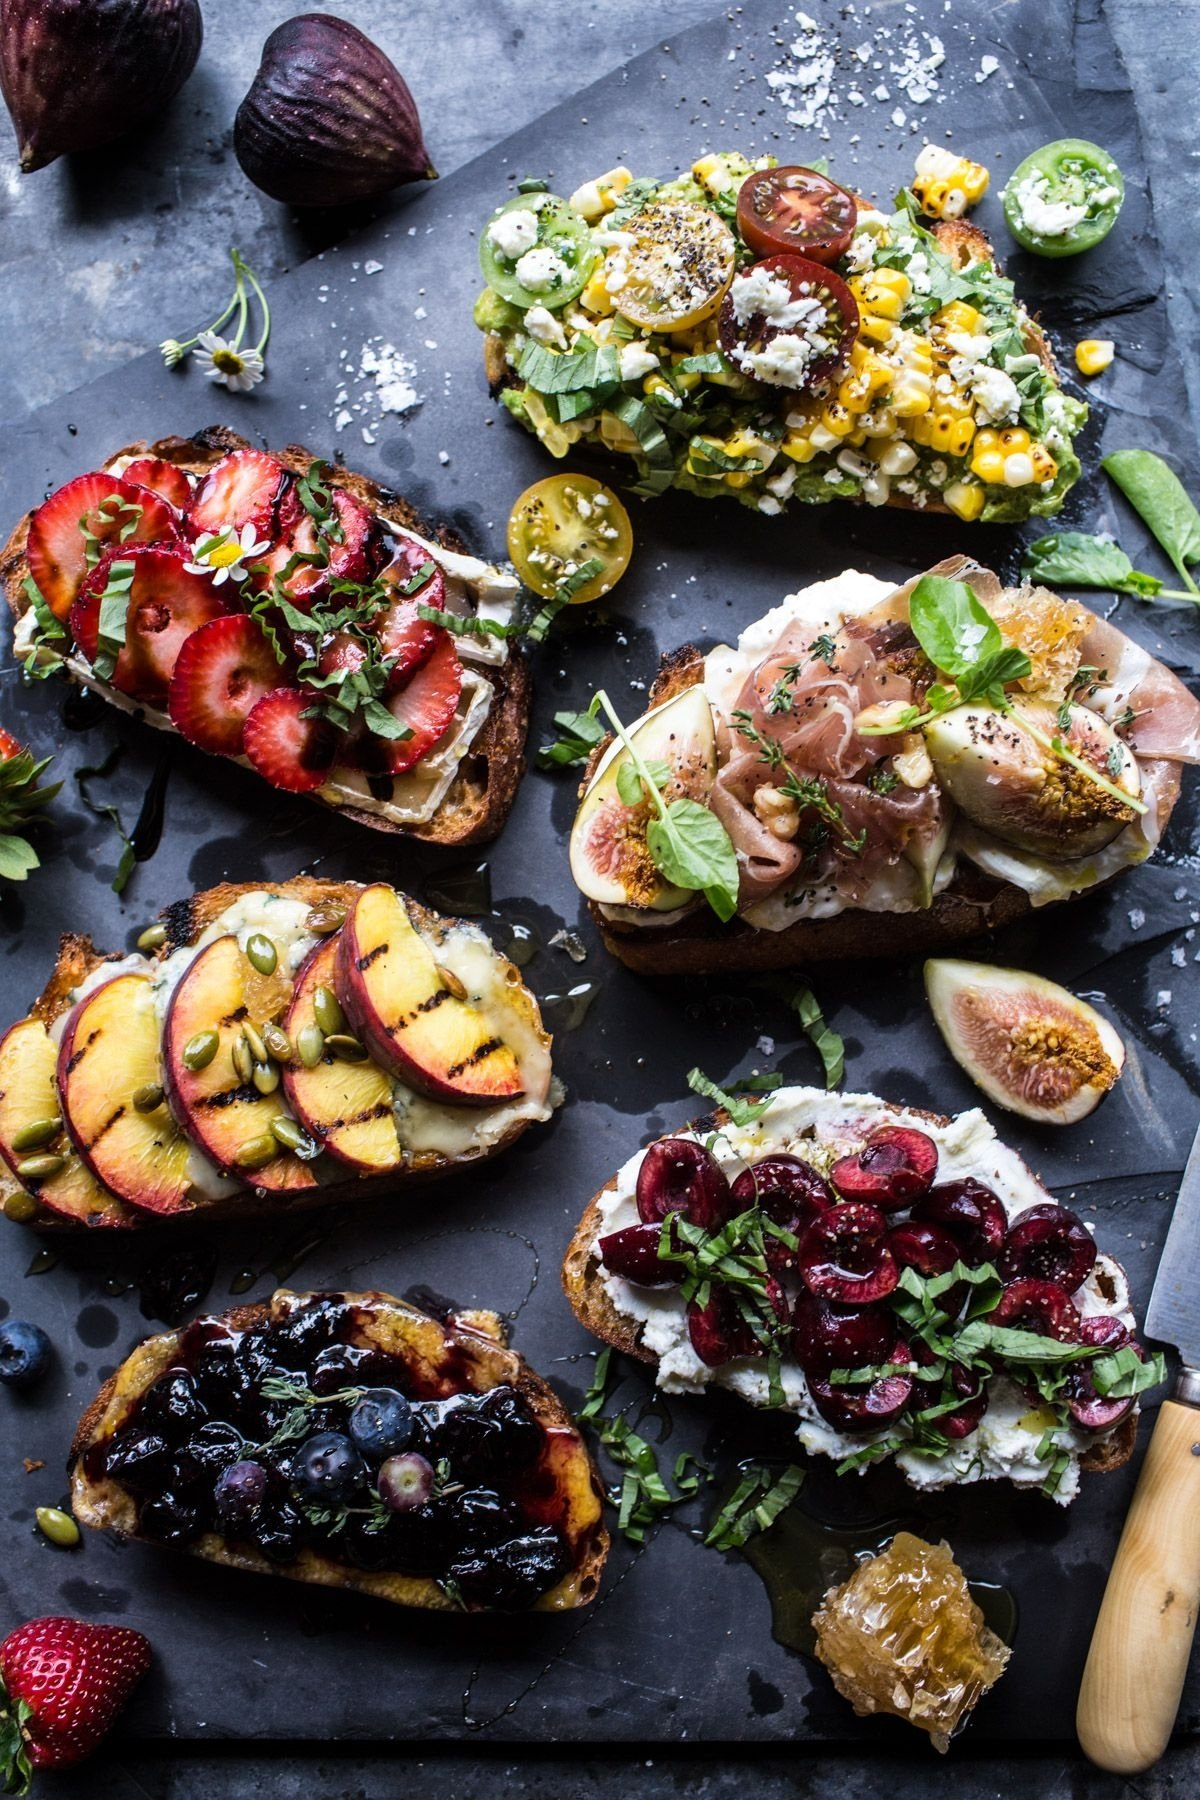 10 Stylish Summer Dinner Party Menu Ideas summer crostini 6 ways summer food and food and drink 1 2021